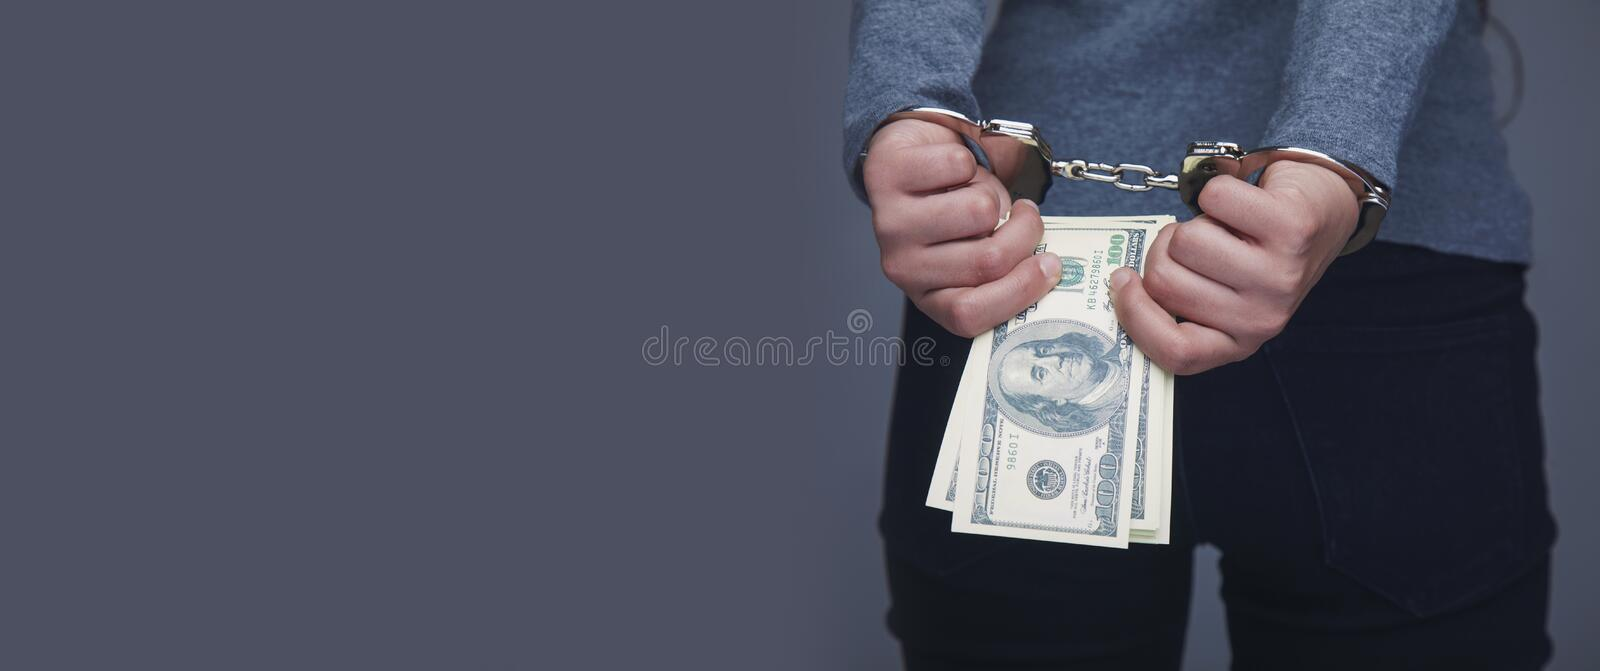 Woman handcuffed for her crimes. Corruption, bribe, justice con royalty free stock image